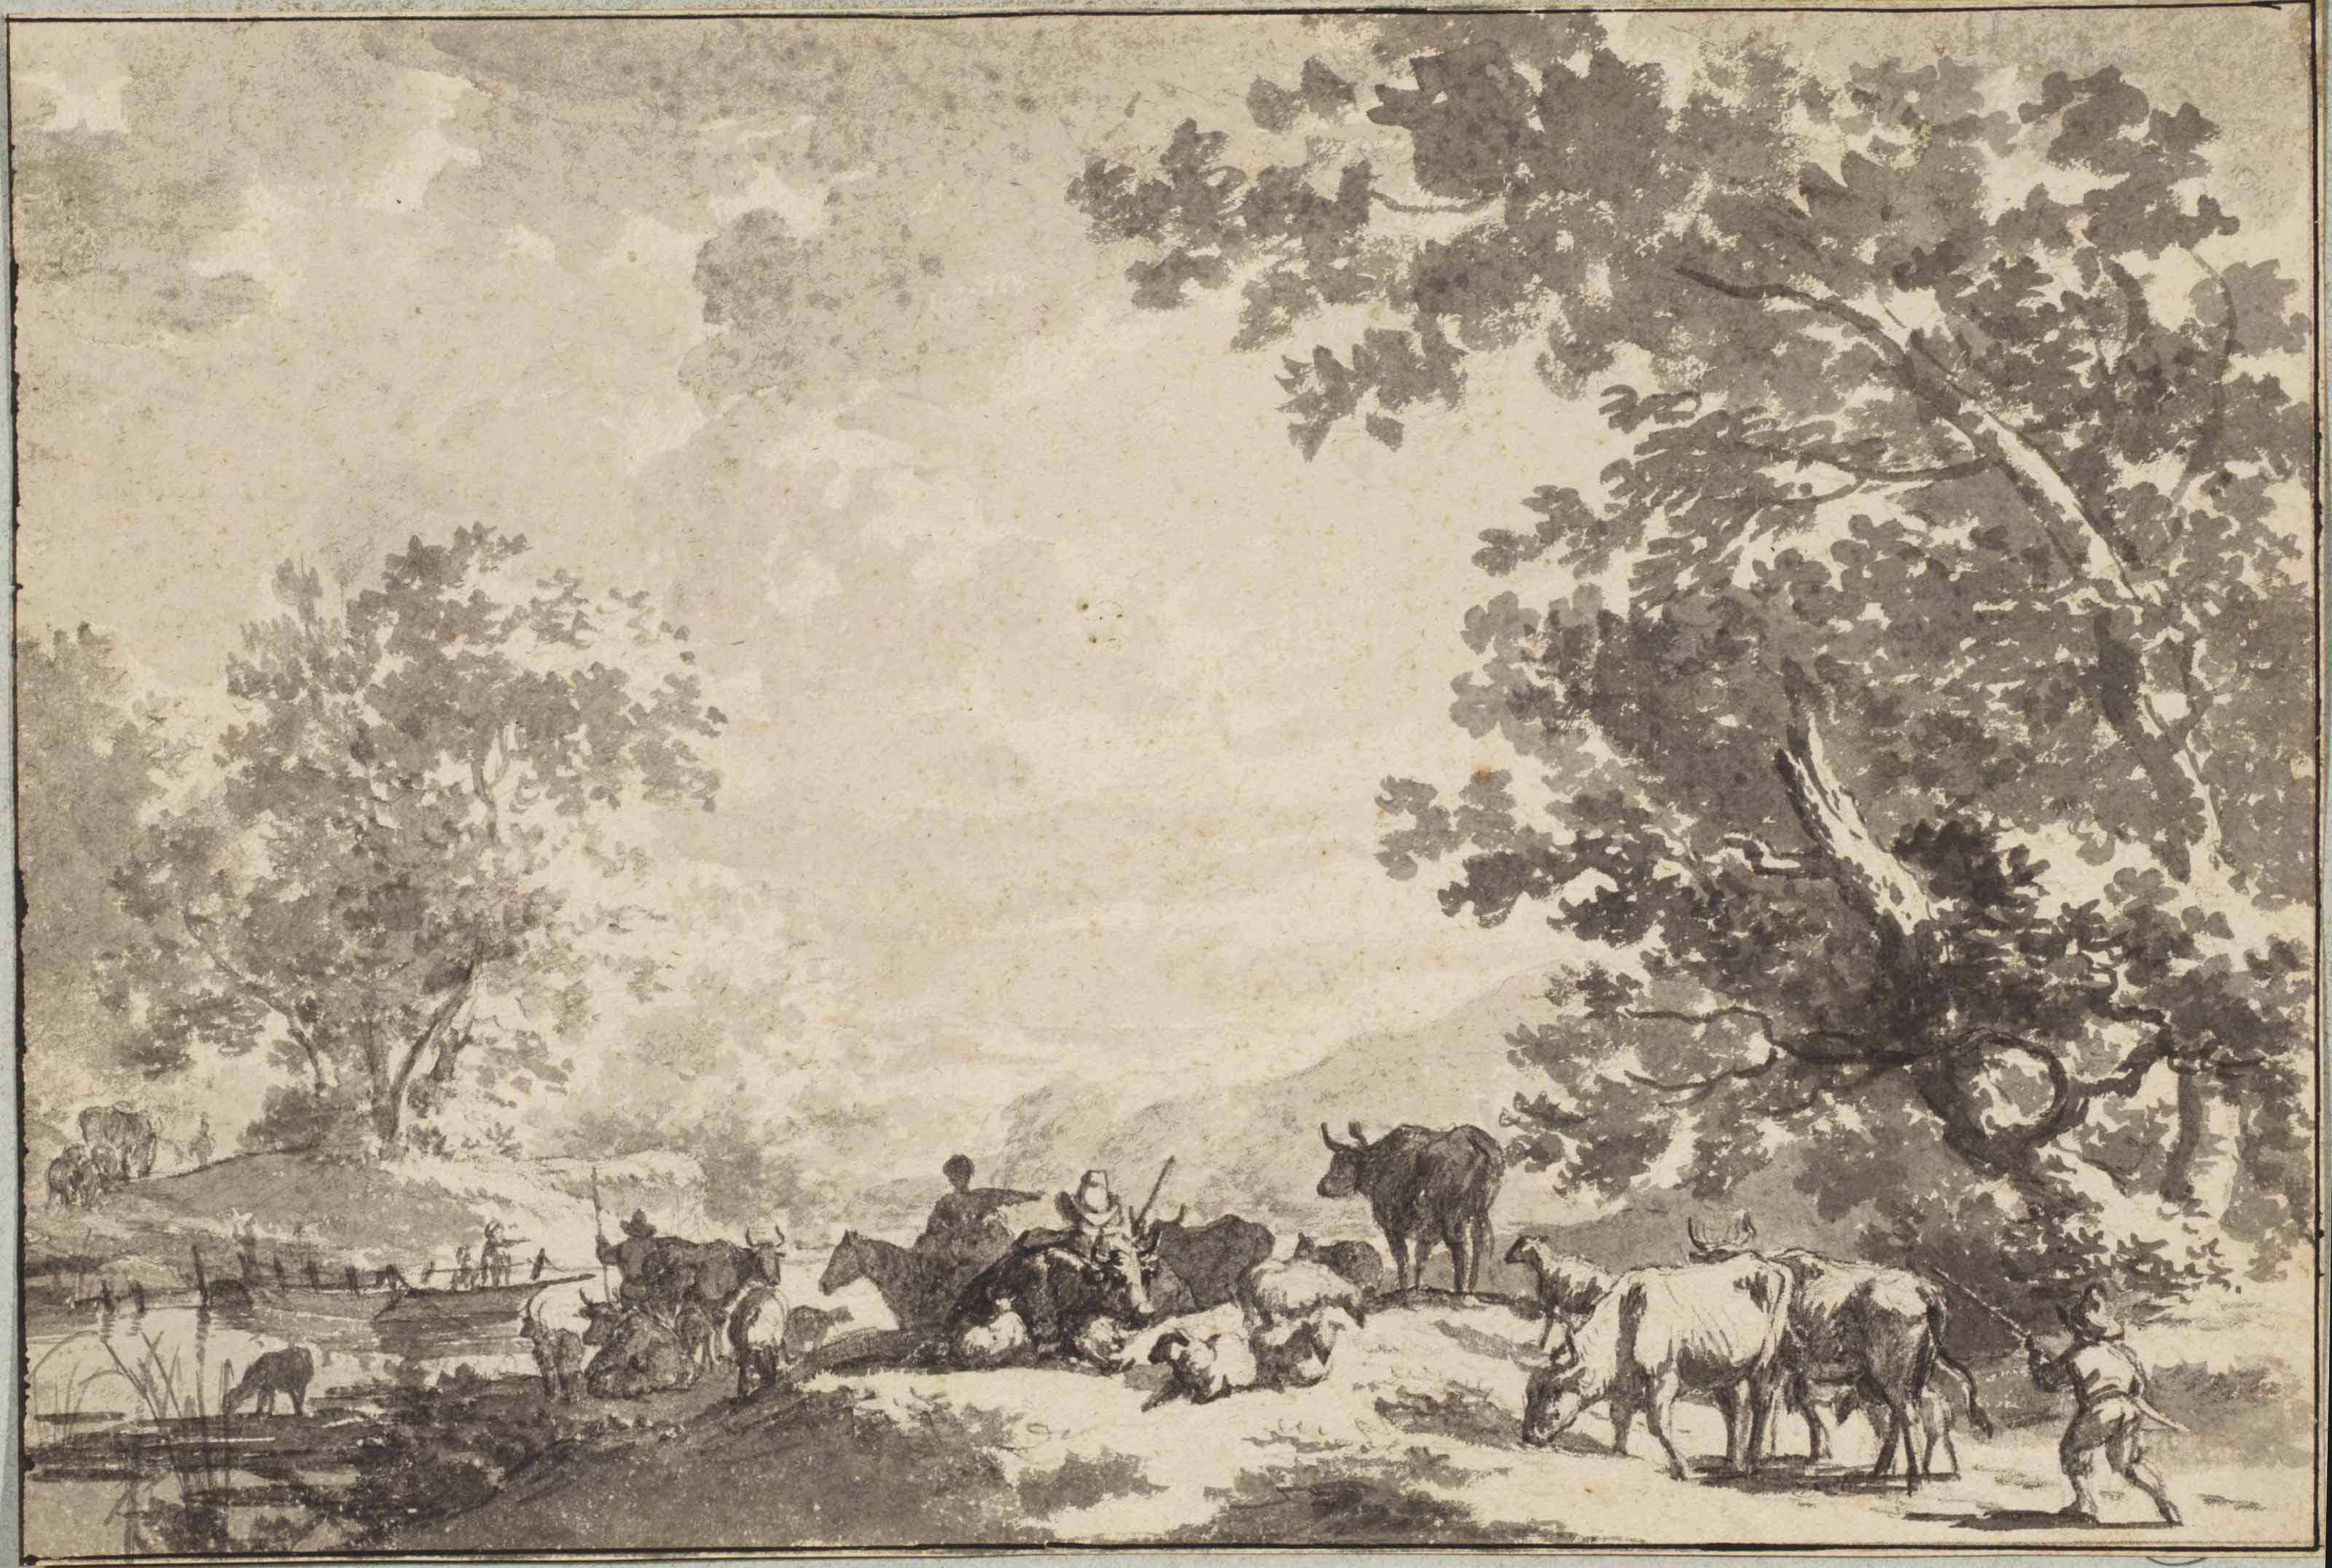 Peasants and animals in a wooded river landscape